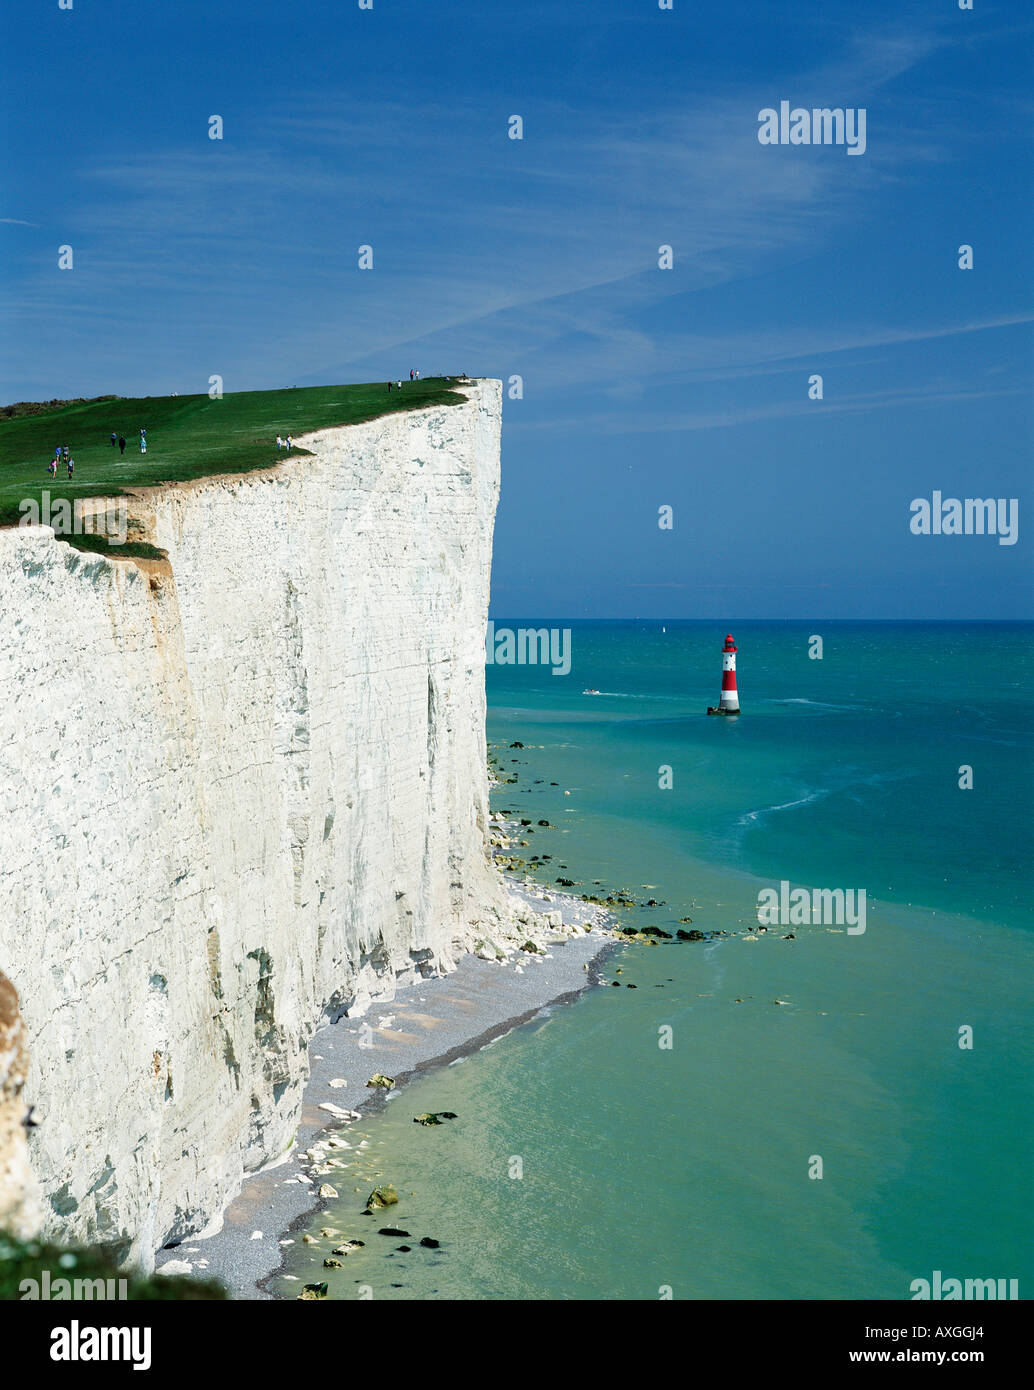 The white chalk cliffs of Beachy Head part of the Seven Sisters coastline and Beachy Head Lighthouse, near Eastbourne, East Sussex, England, UK, GB - Stock Image